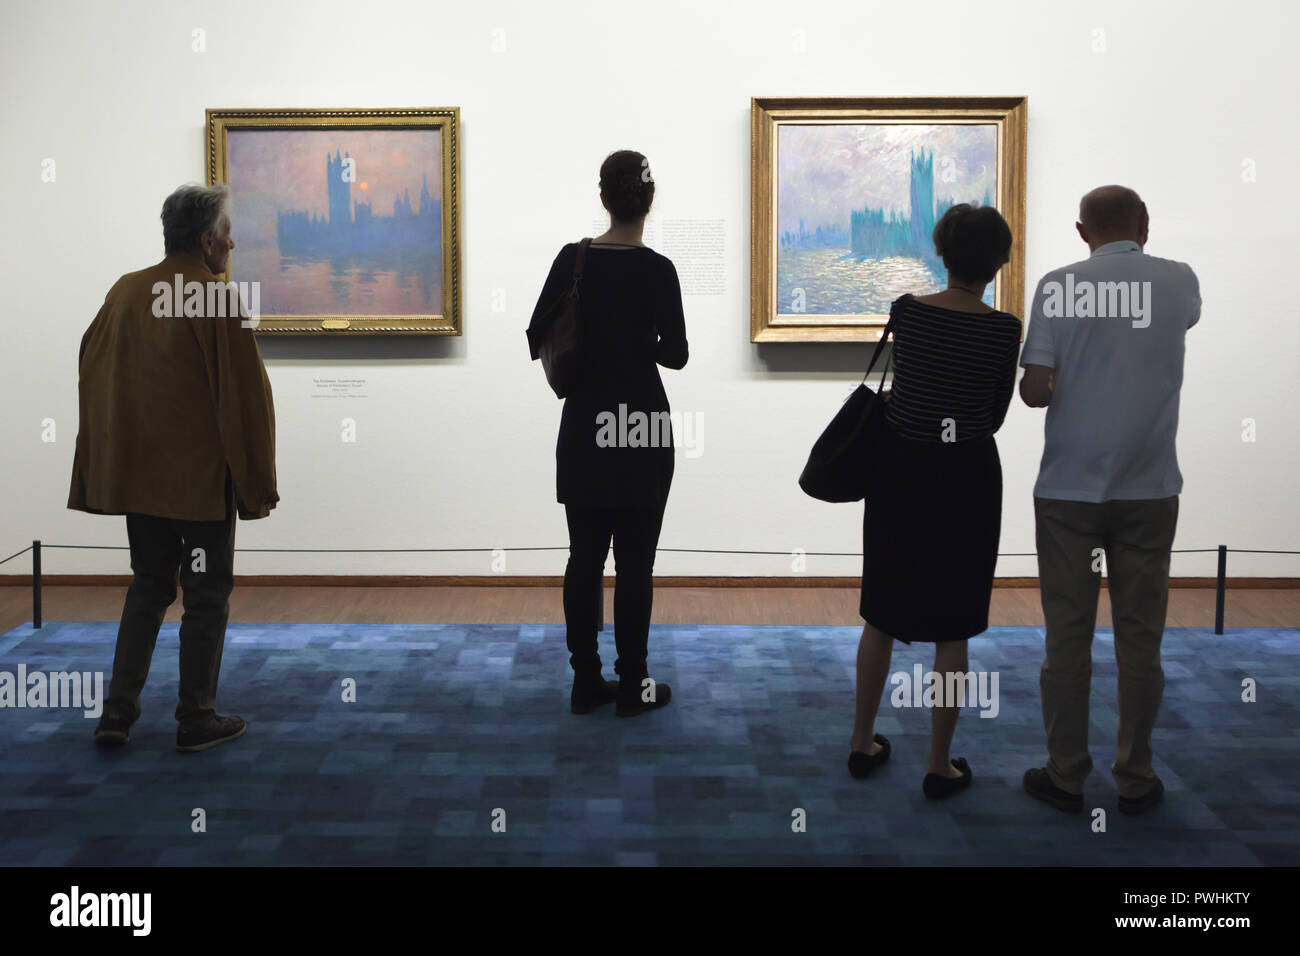 Photo Impressionism Stock Photos & Photo Impressionism Stock